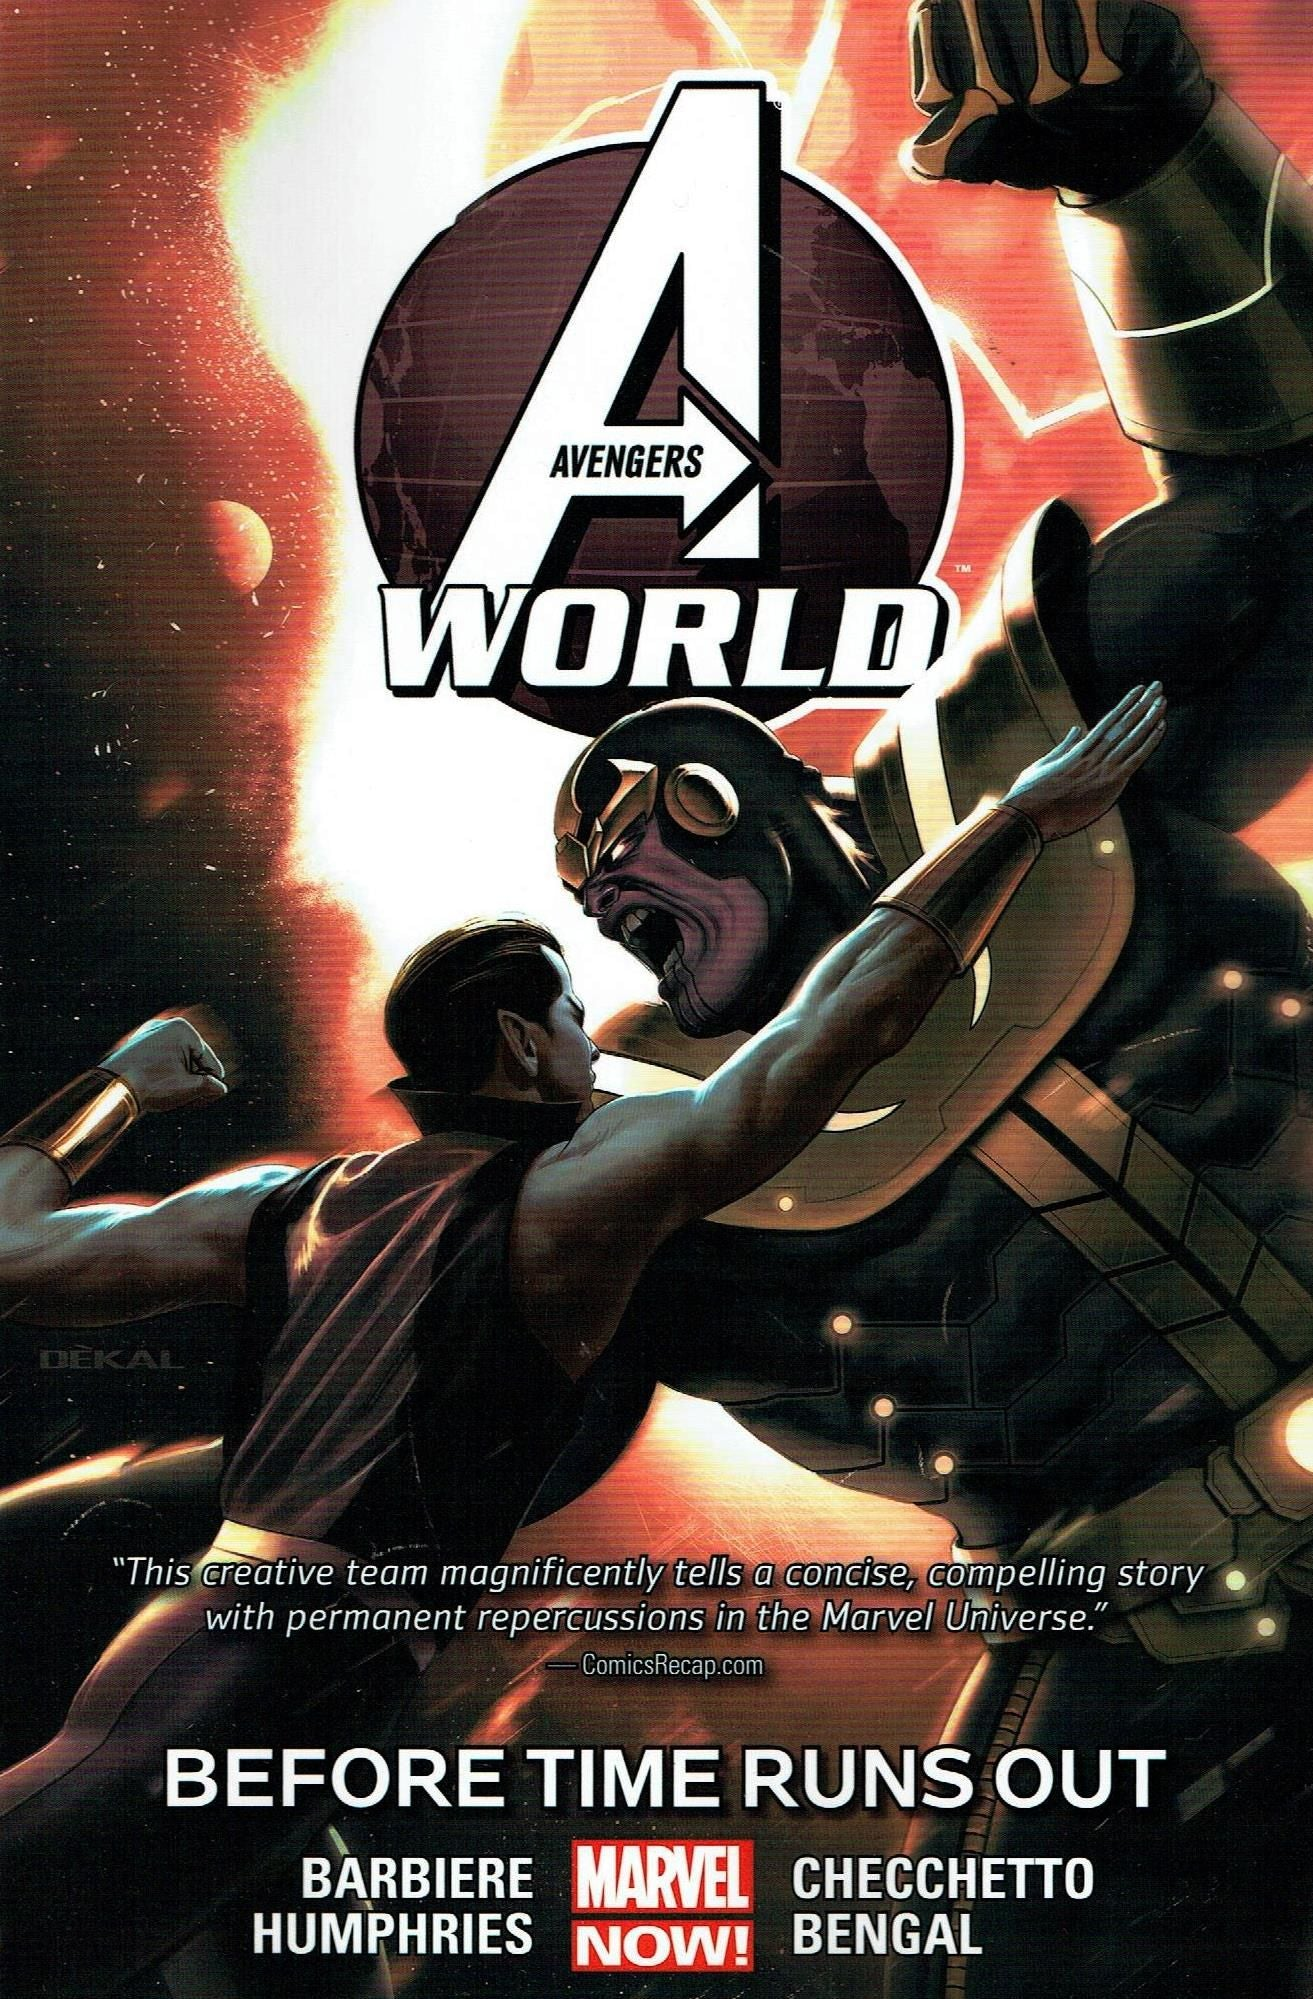 Avengers World Volume 4: Before Time Runs Out